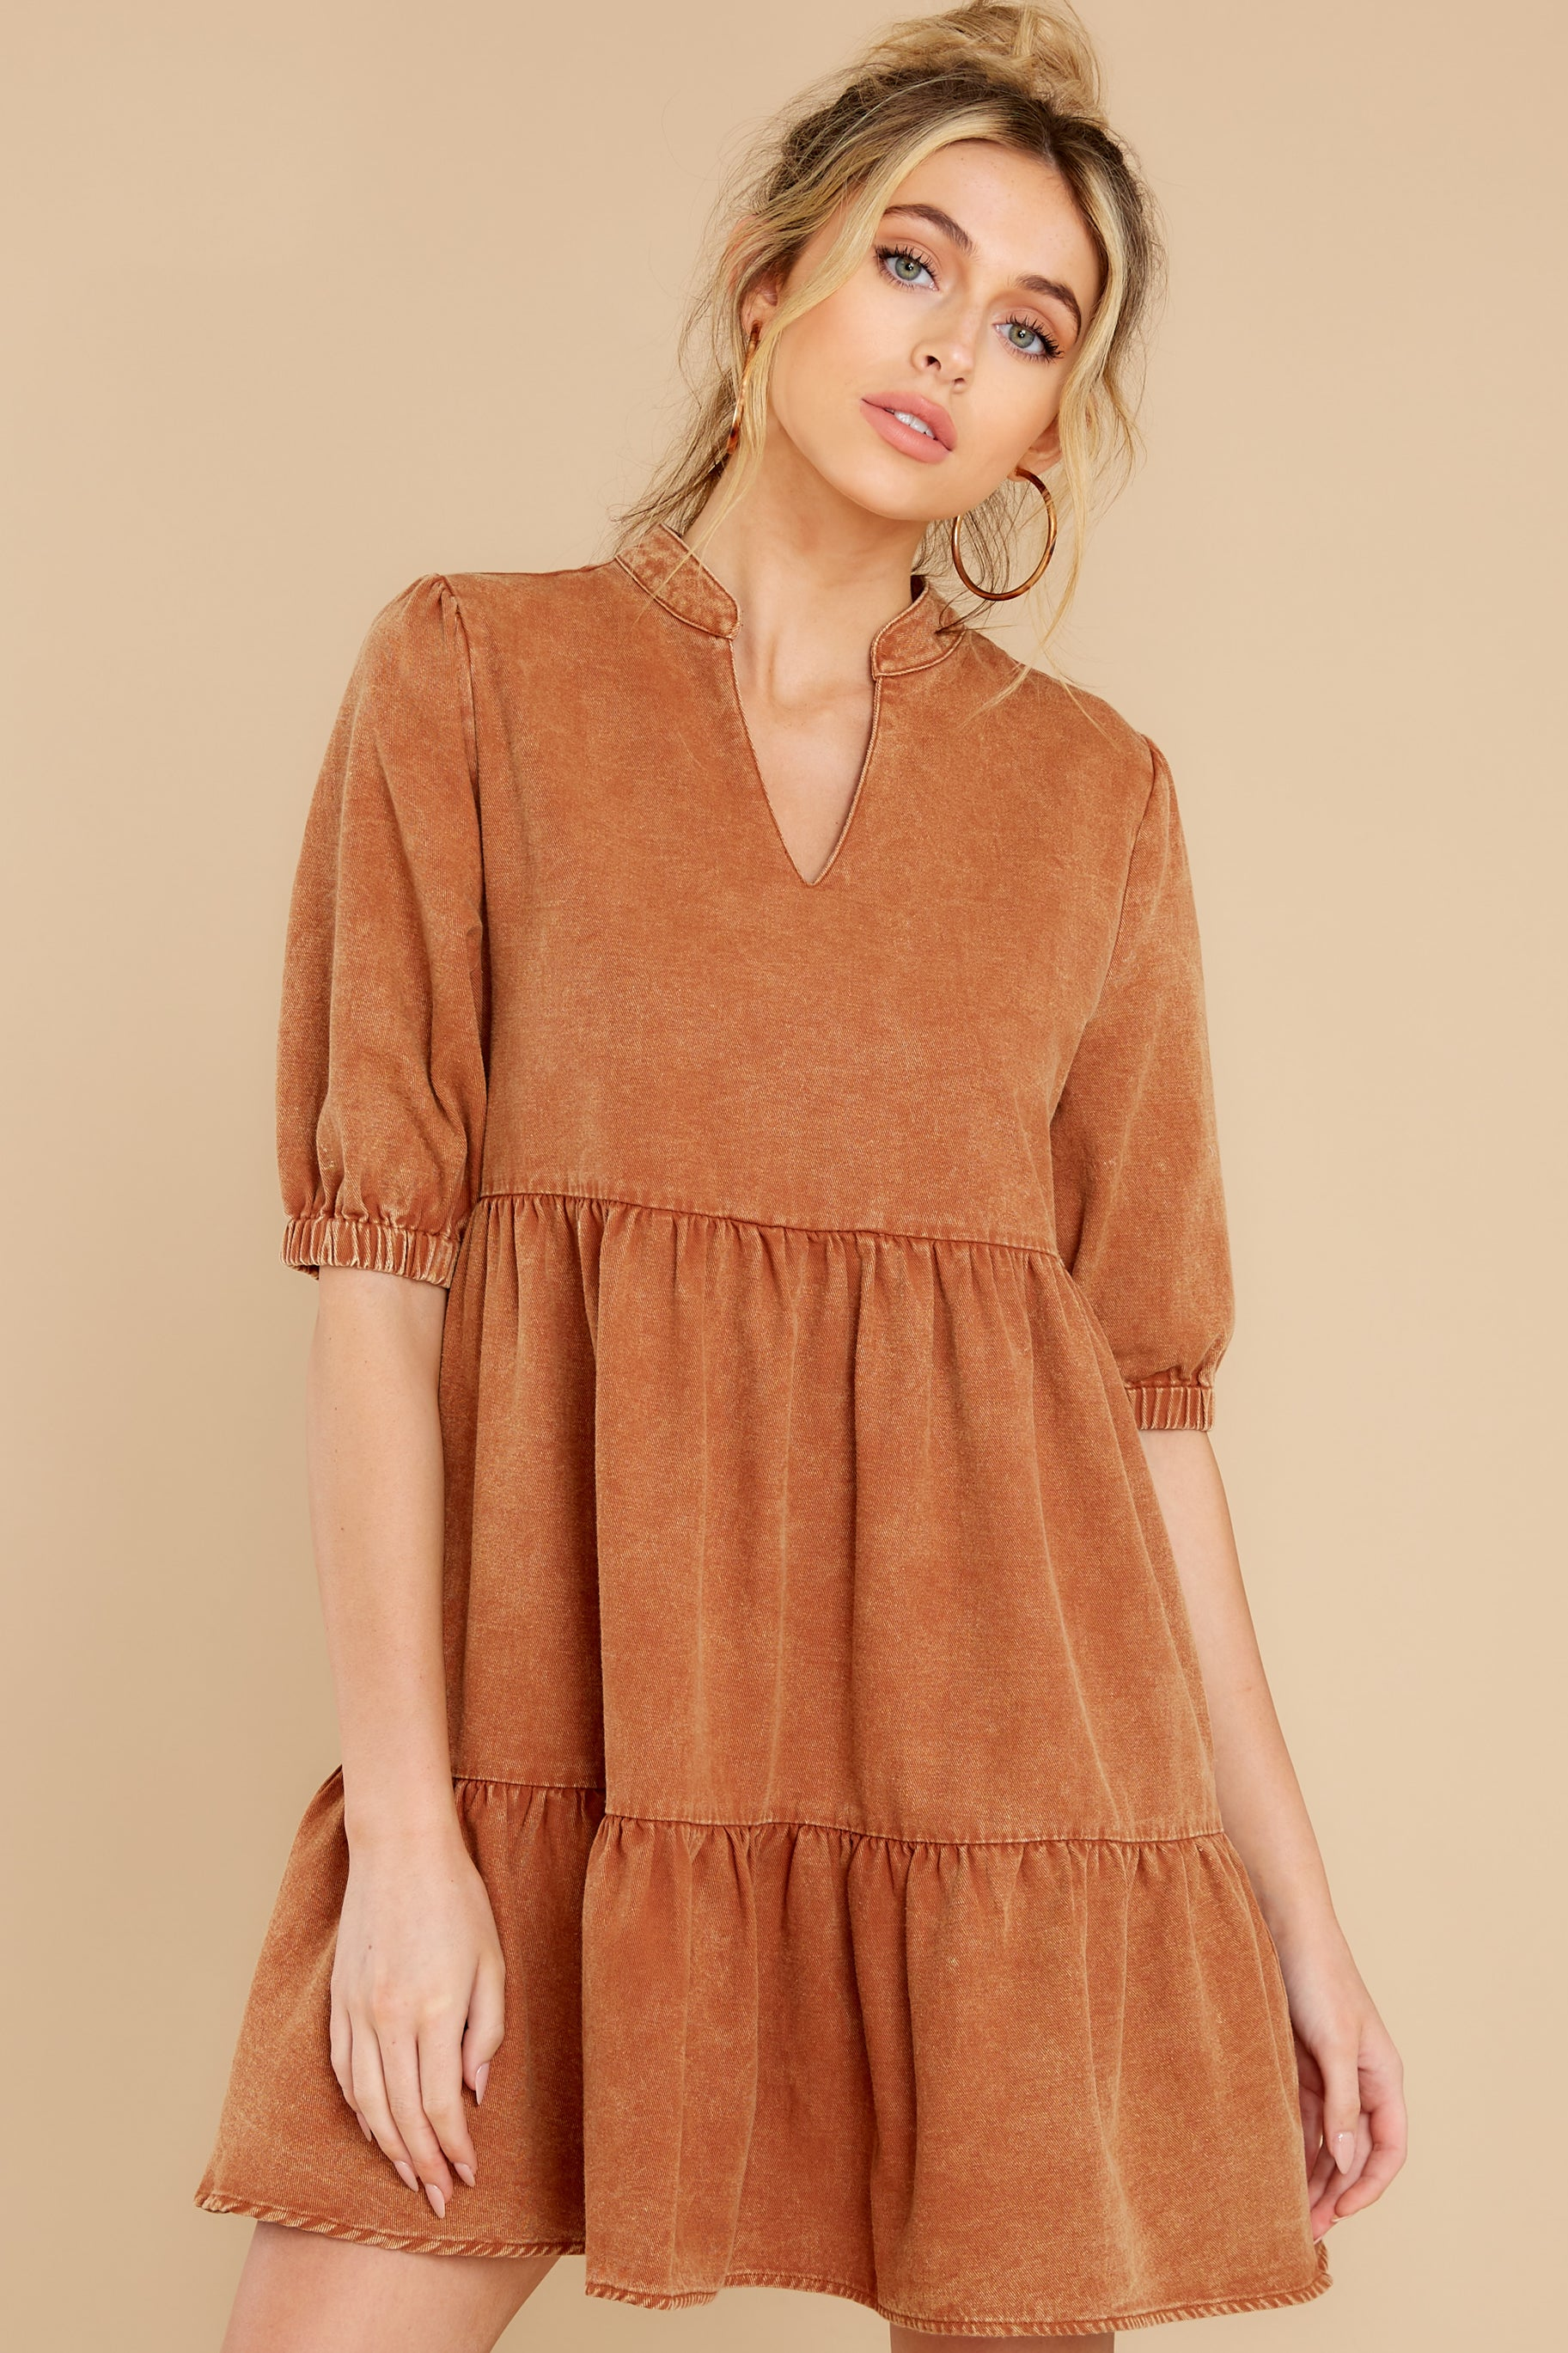 5 Not So Basic Caramel Brown Dress at reddress.com